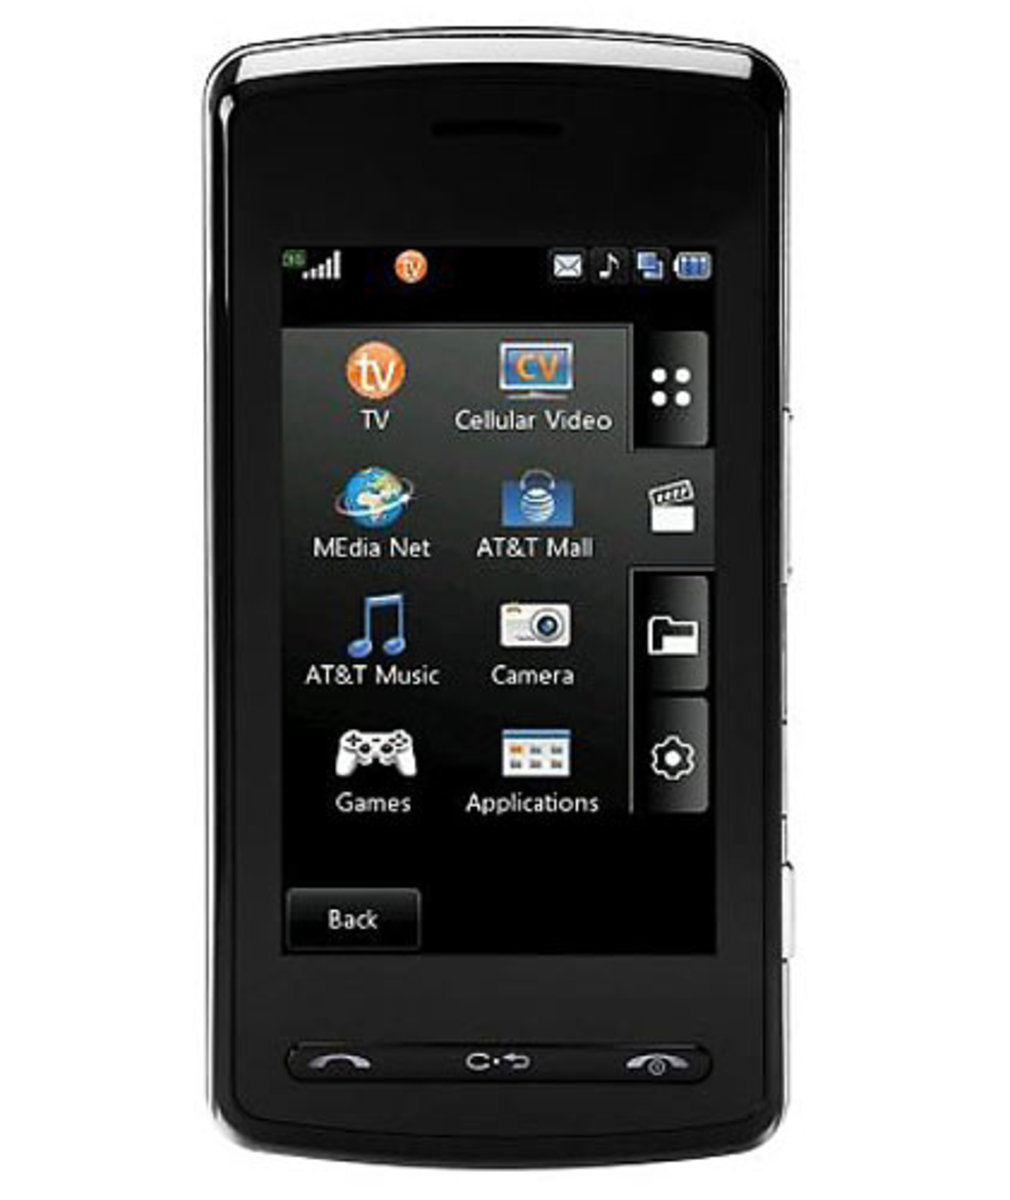 LG Vu Mobile Phone with FLO TV